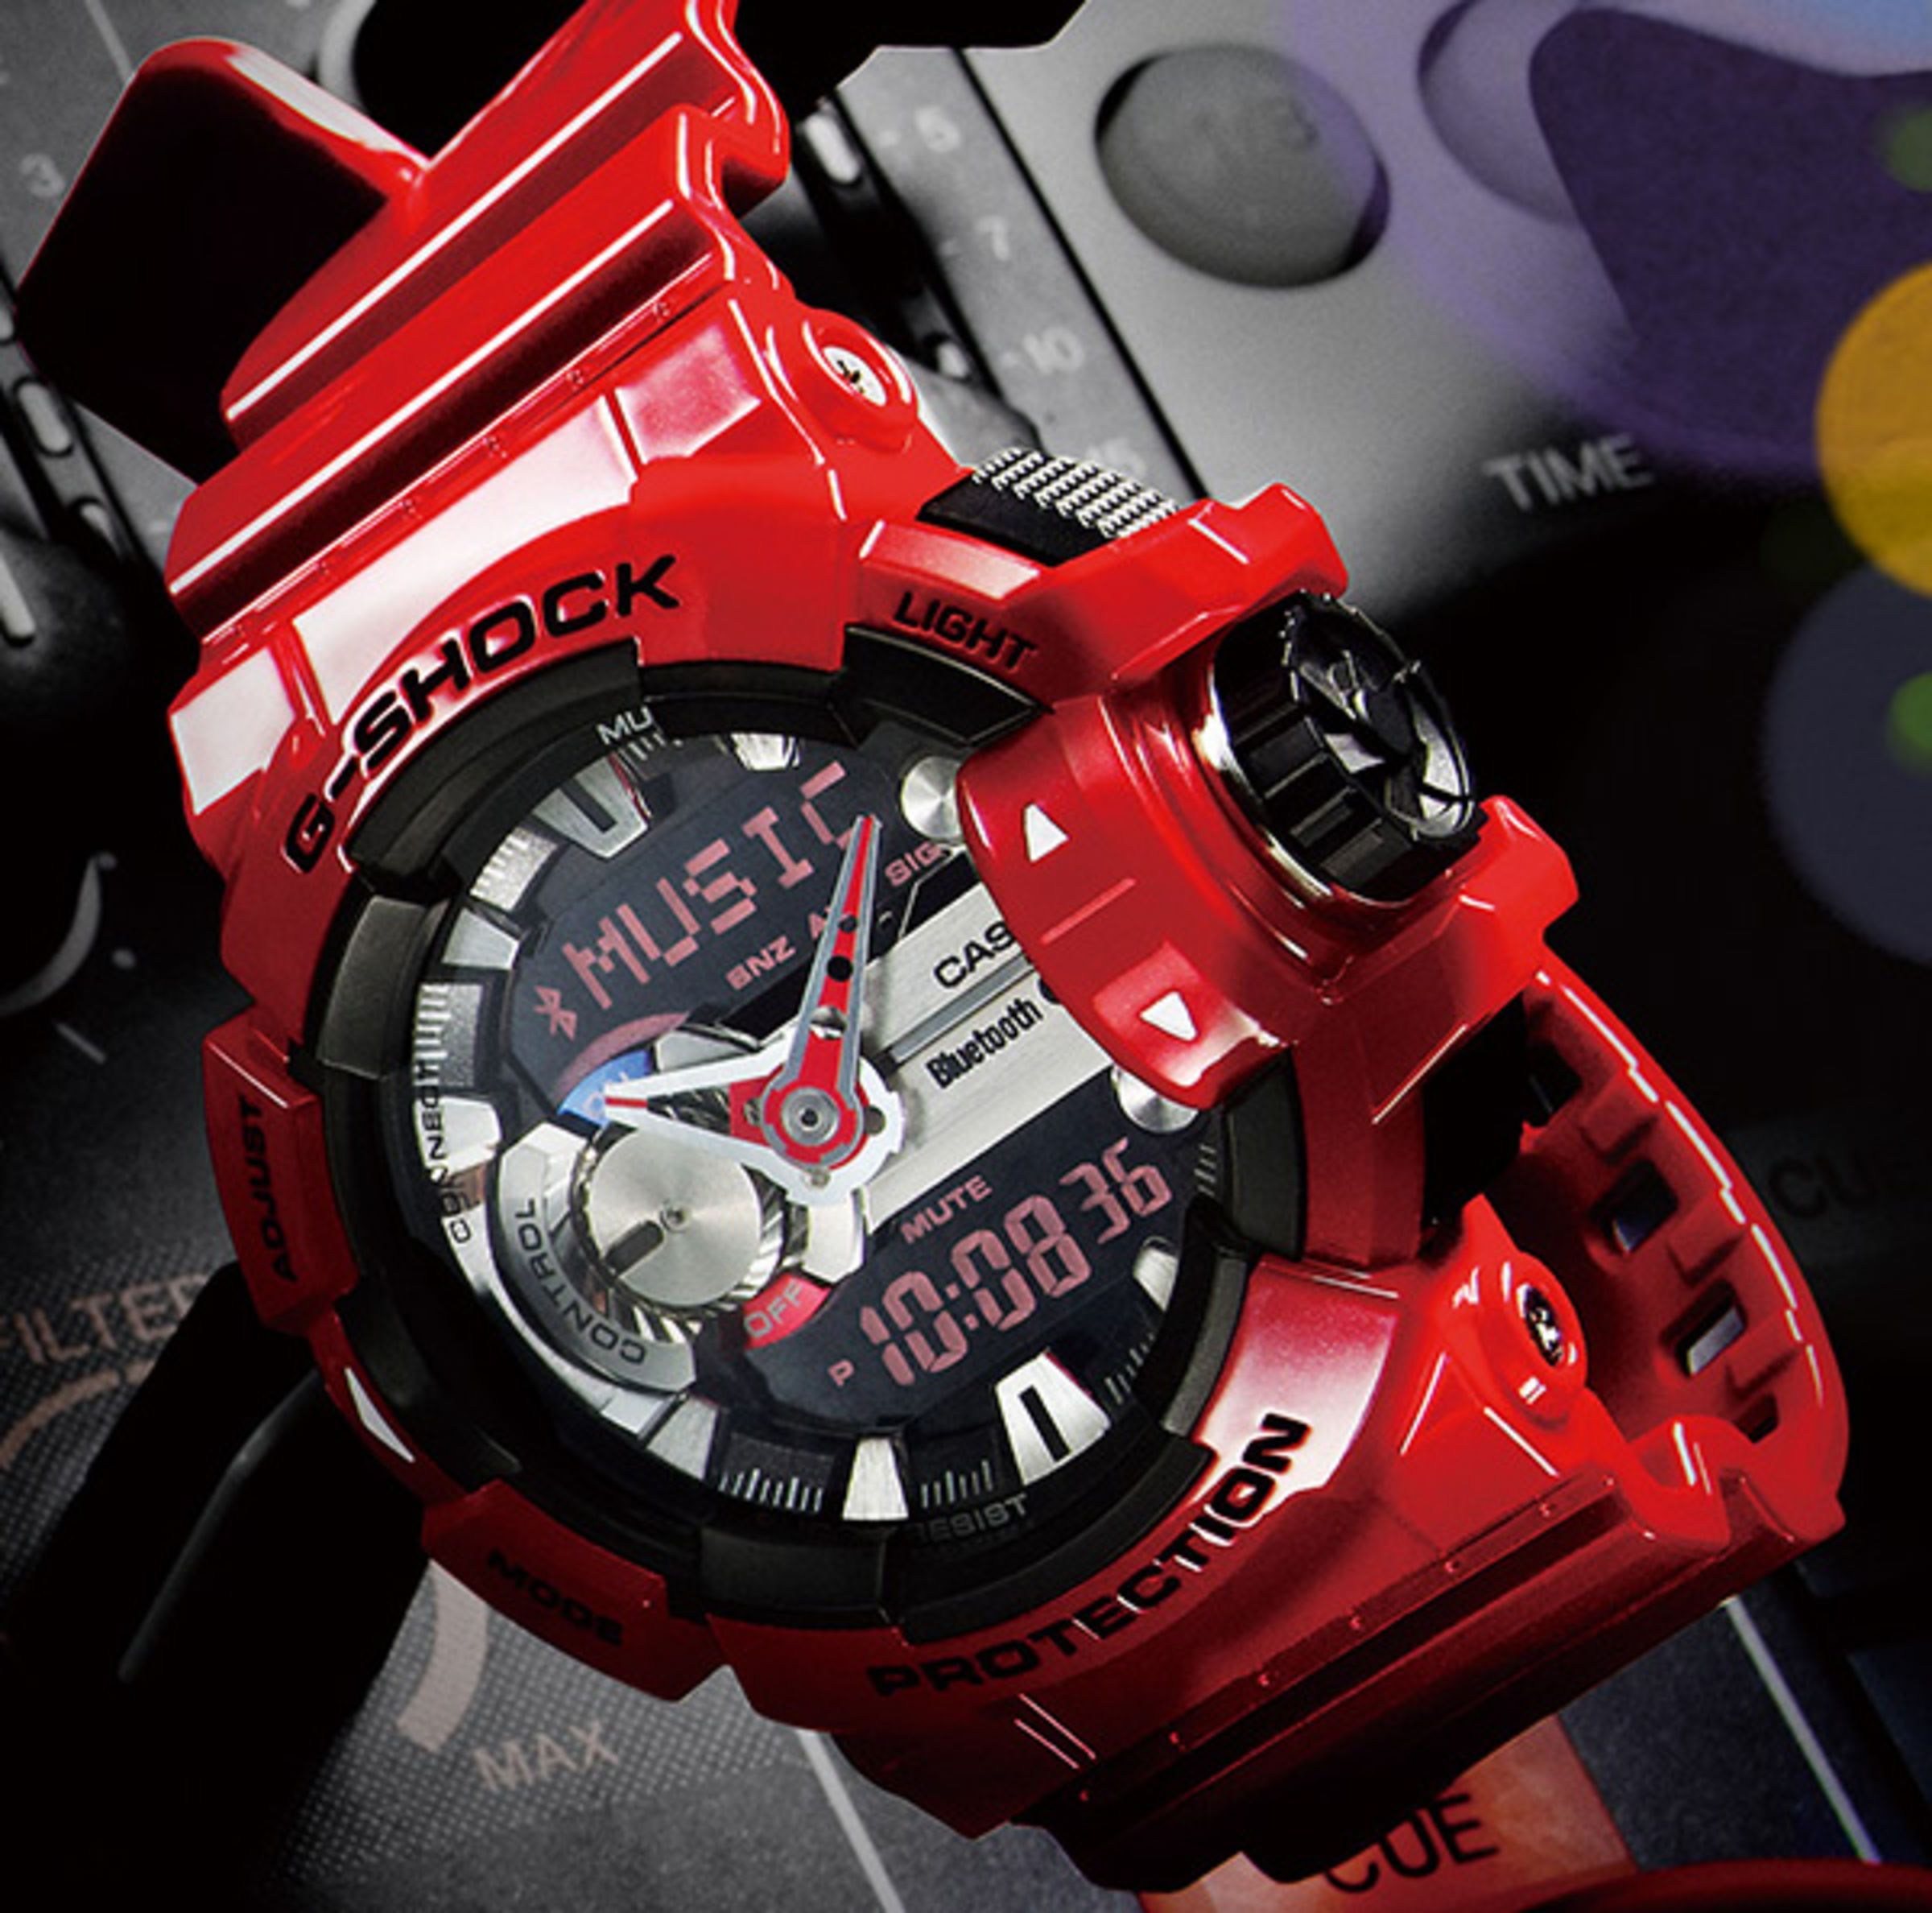 Casio G Shock Gmix Gba 400 Watch Bluetooth Link With Smartphone Camouflage Gd 120cm 4dr Read Control